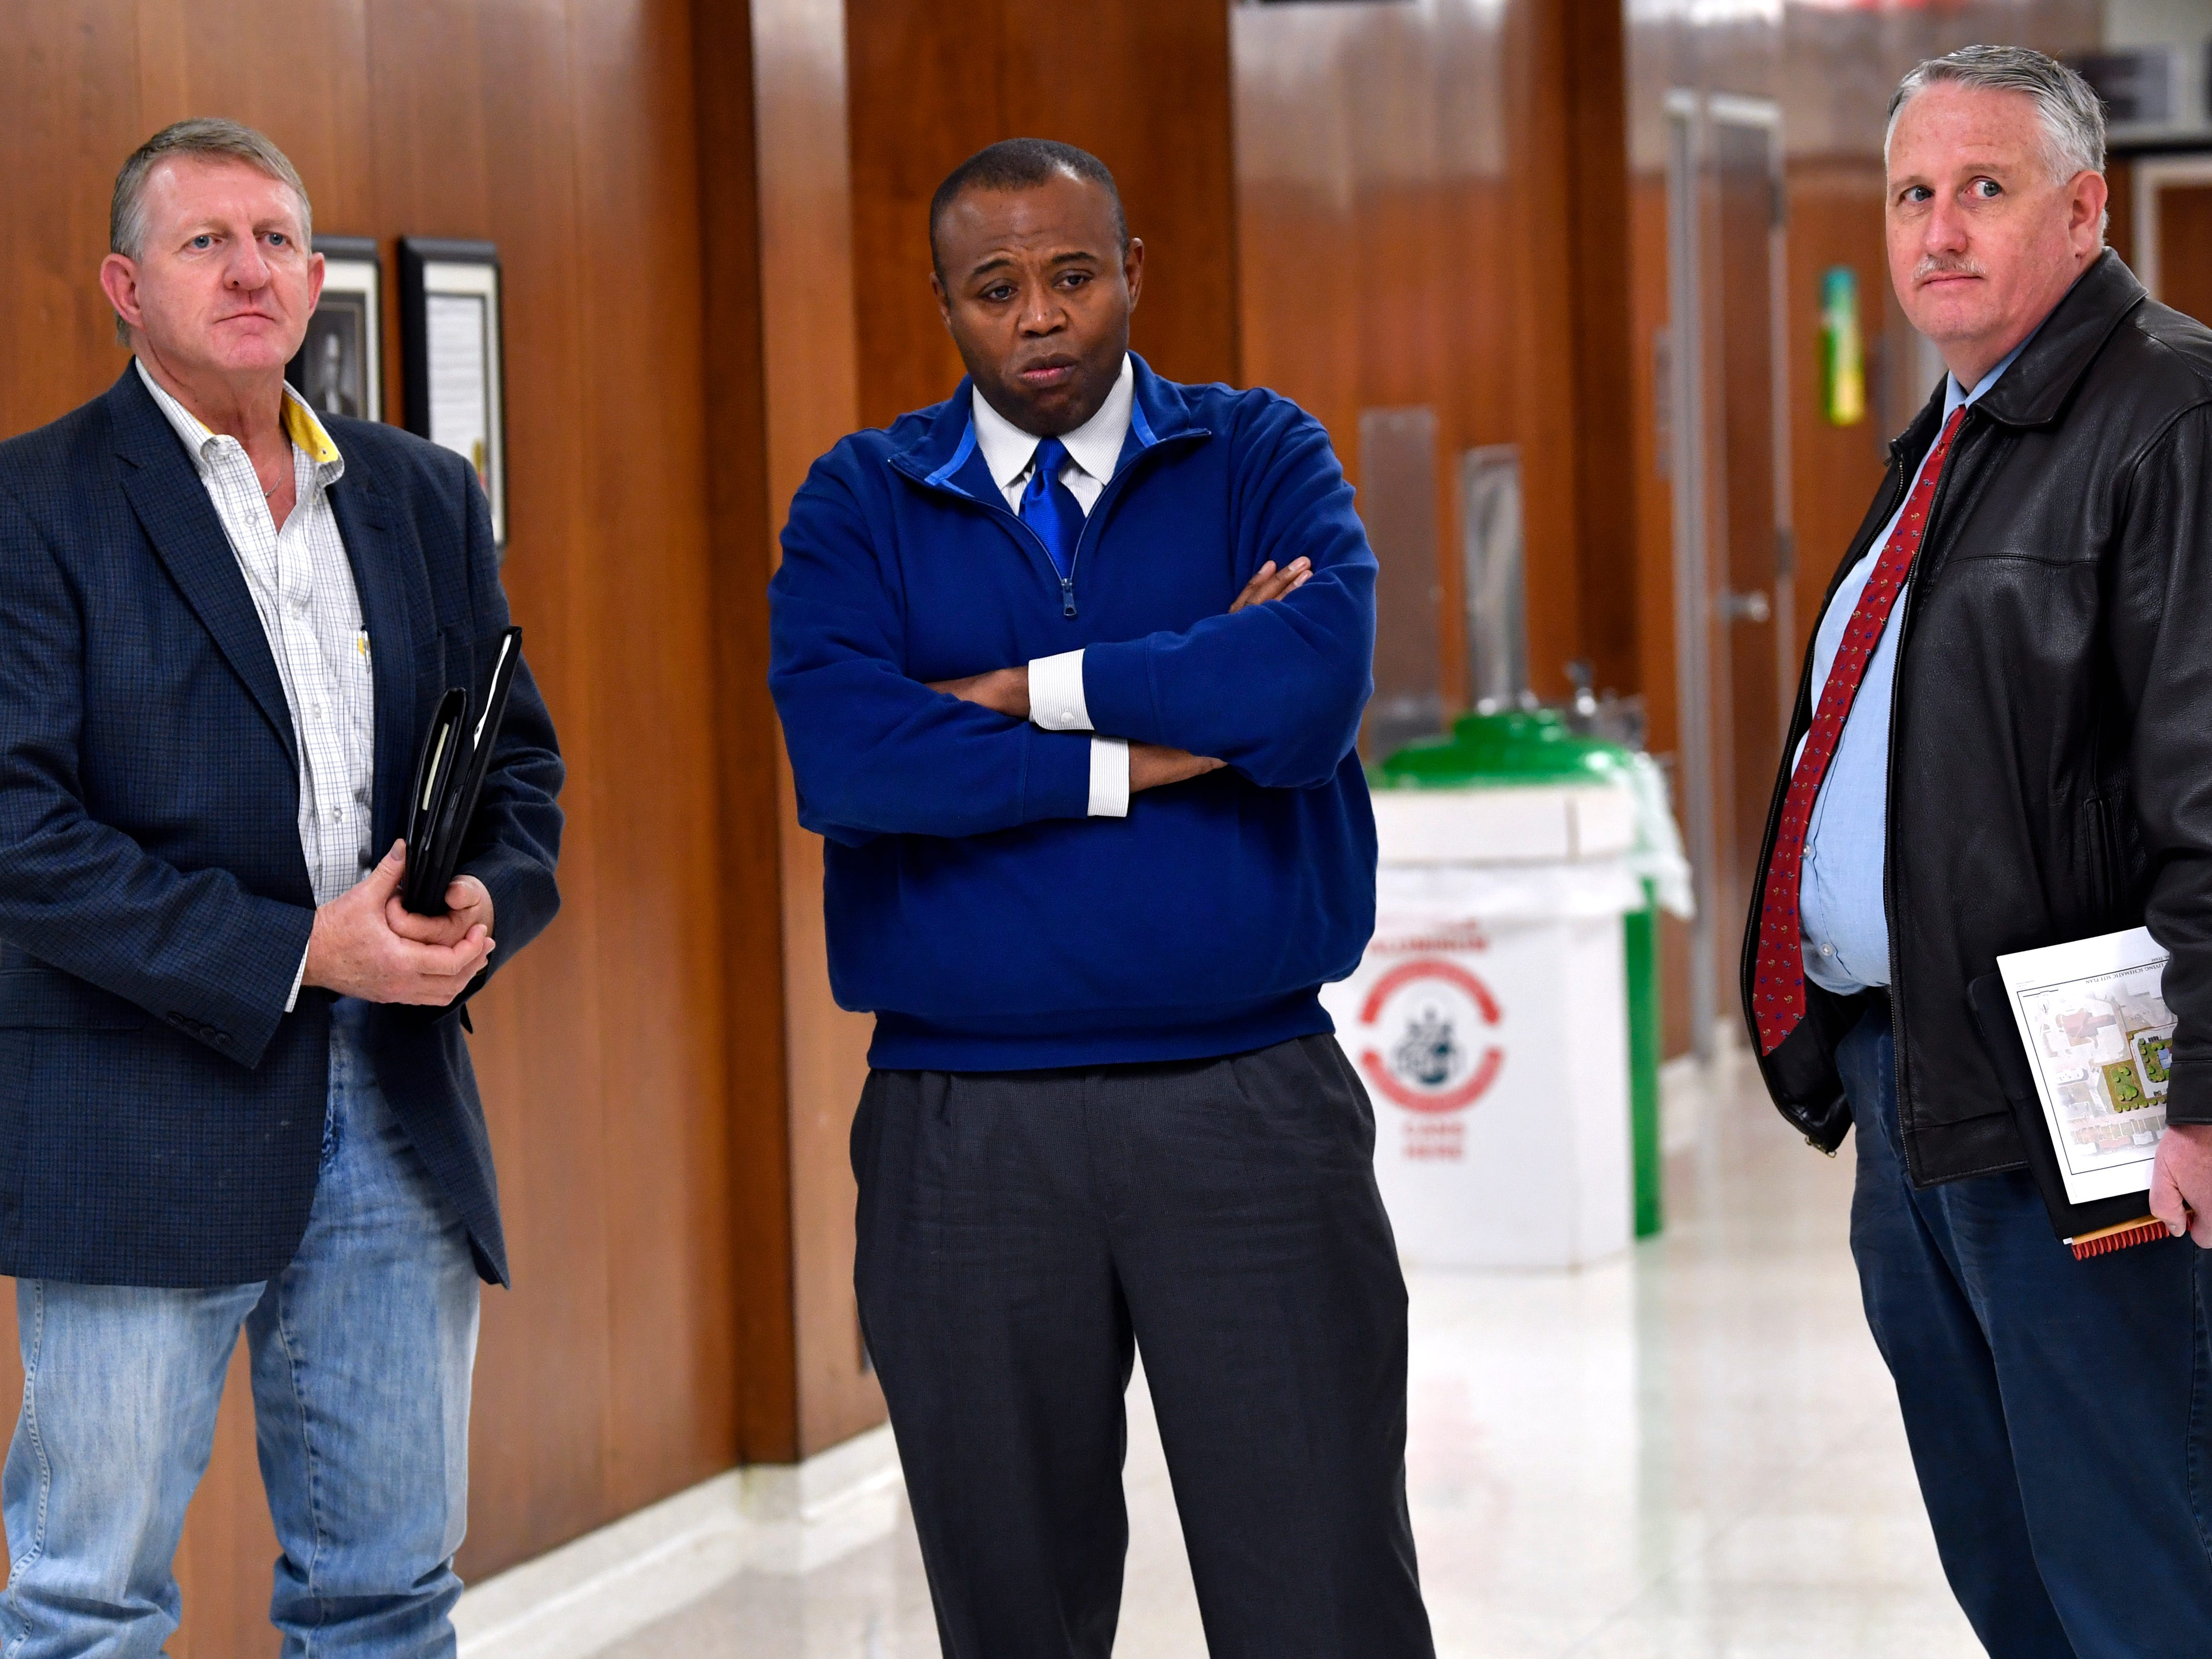 Abilene City Councilman Weldon Hurt (left), Mayor Anthony Williams, and Councilman Shane Price listen to hard questions asked of fellow Councilman Kyle McAlister by reporters after Thursday's council meeting Jan. 24, 2019. The measure to censure McAlister for remarks community members have labeled as racist did not pass Thursday.